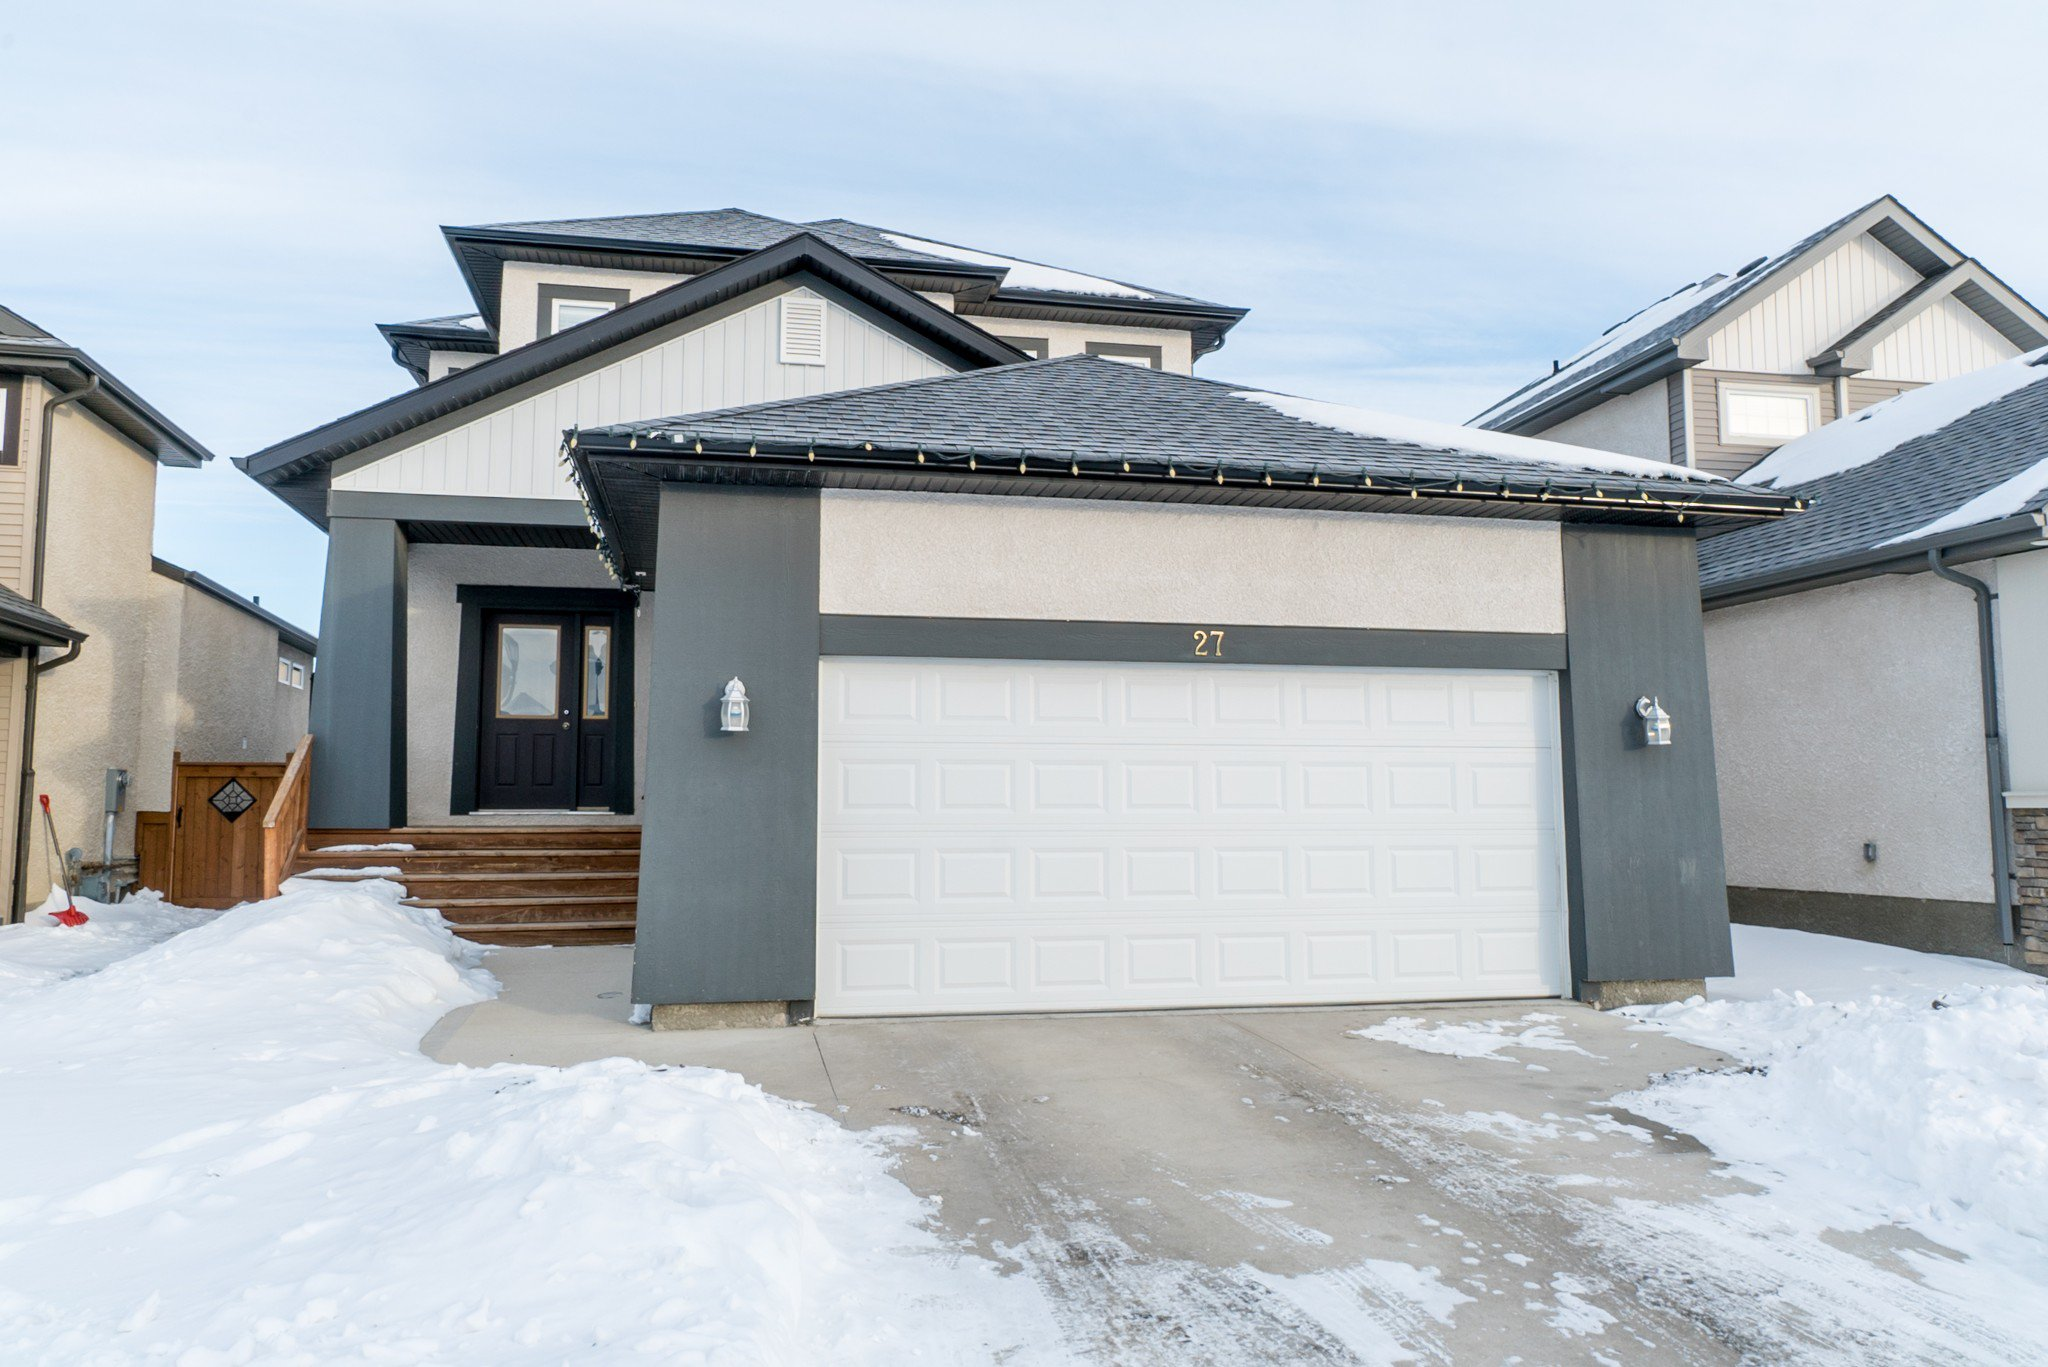 Main Photo: 27 Moonbeam Way in Winnipeg: Sage Creek Residential for sale (2K)  : MLS®# 1901220